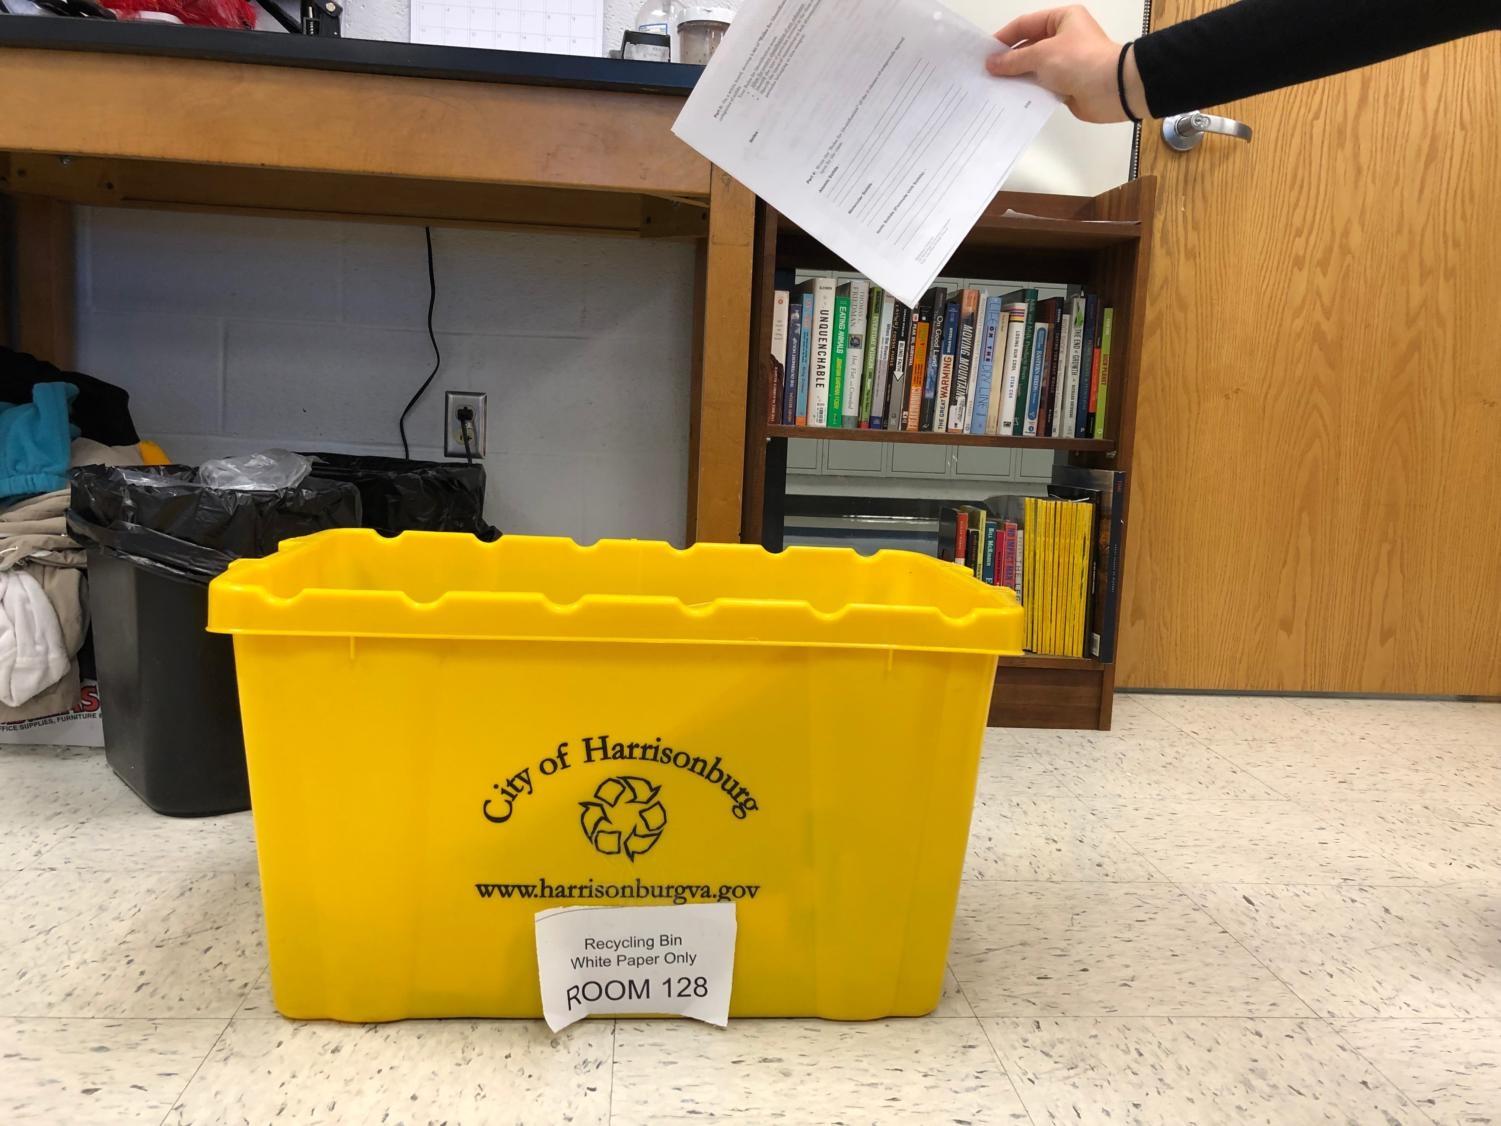 Special education teacher Lisa McQueen started the recycling program and organized the yellow bins with her class.